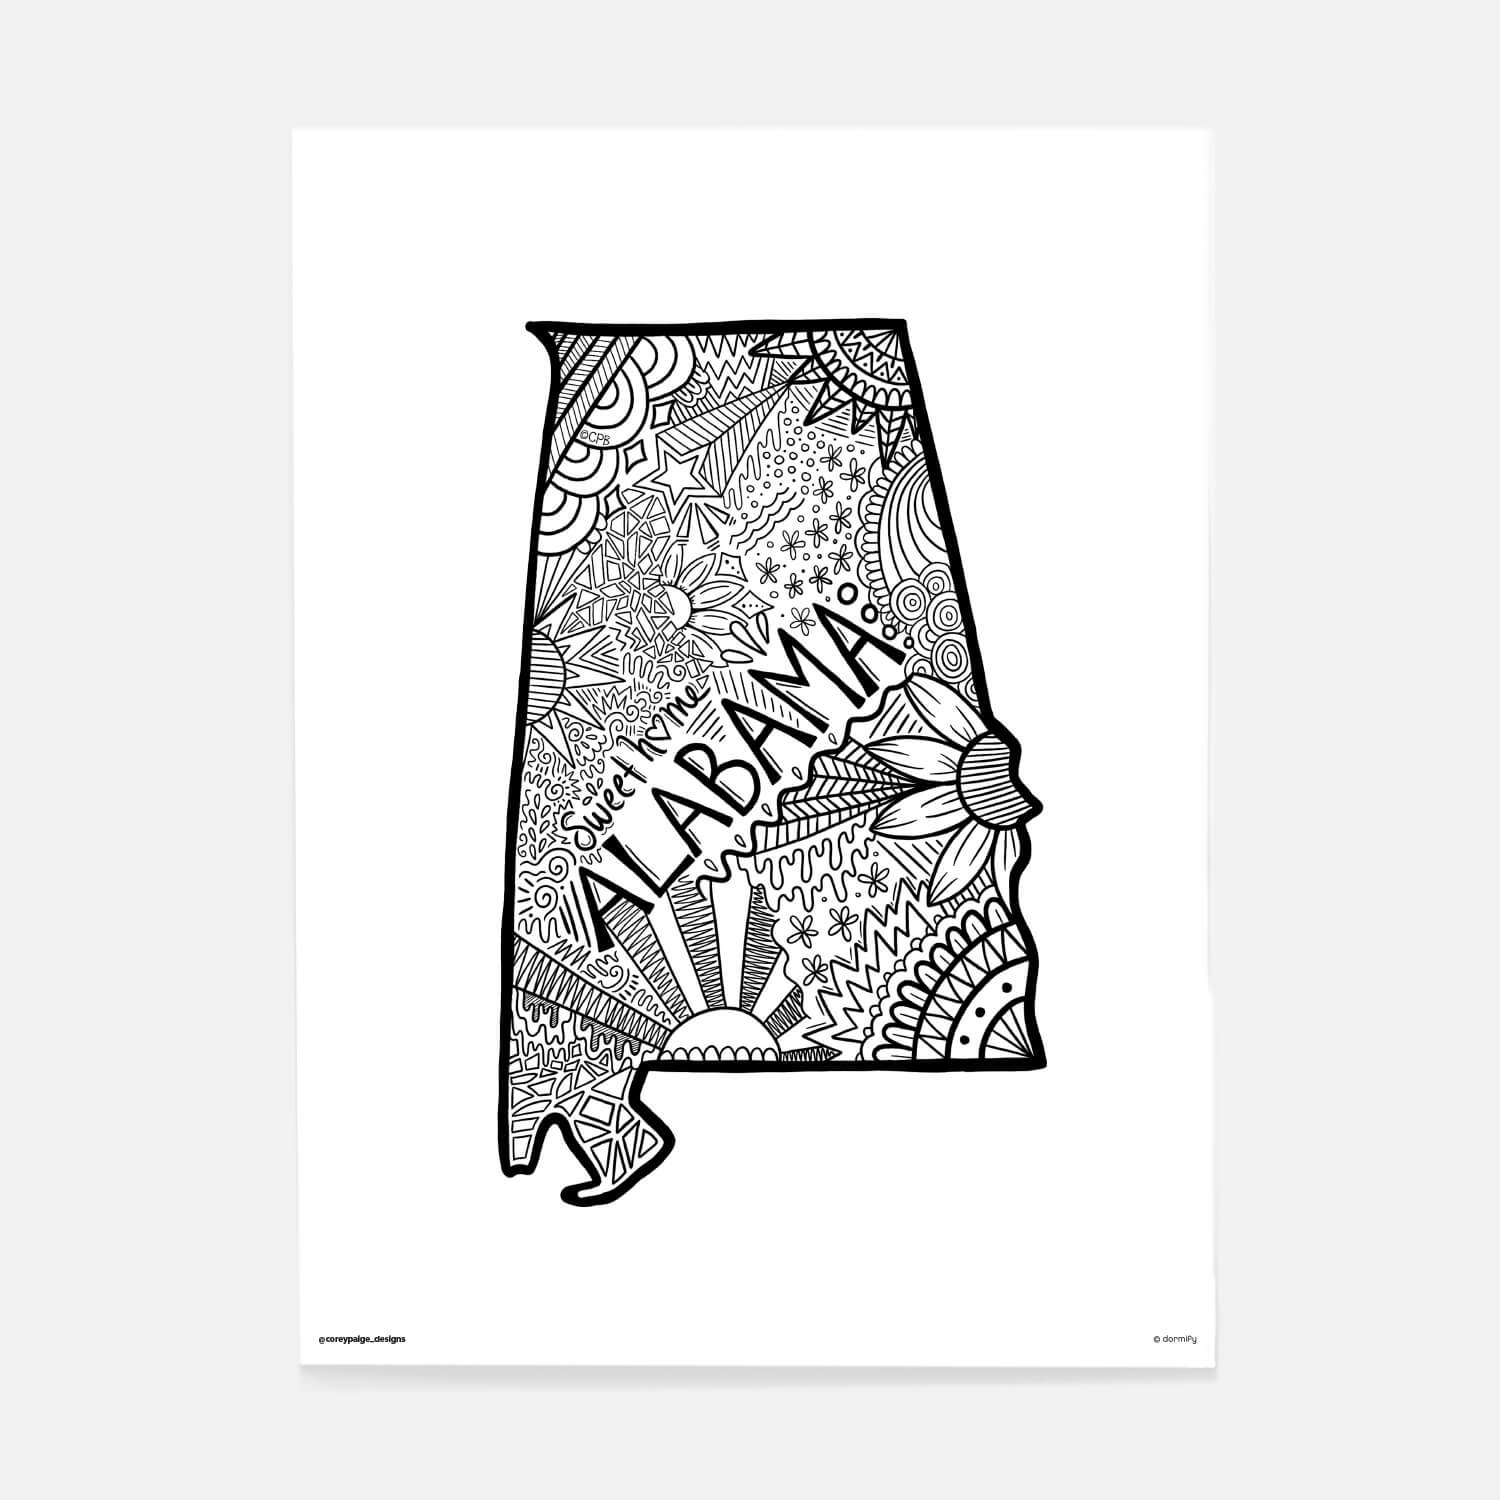 alabama state pride poster by corey paige - white 16x20 | wall